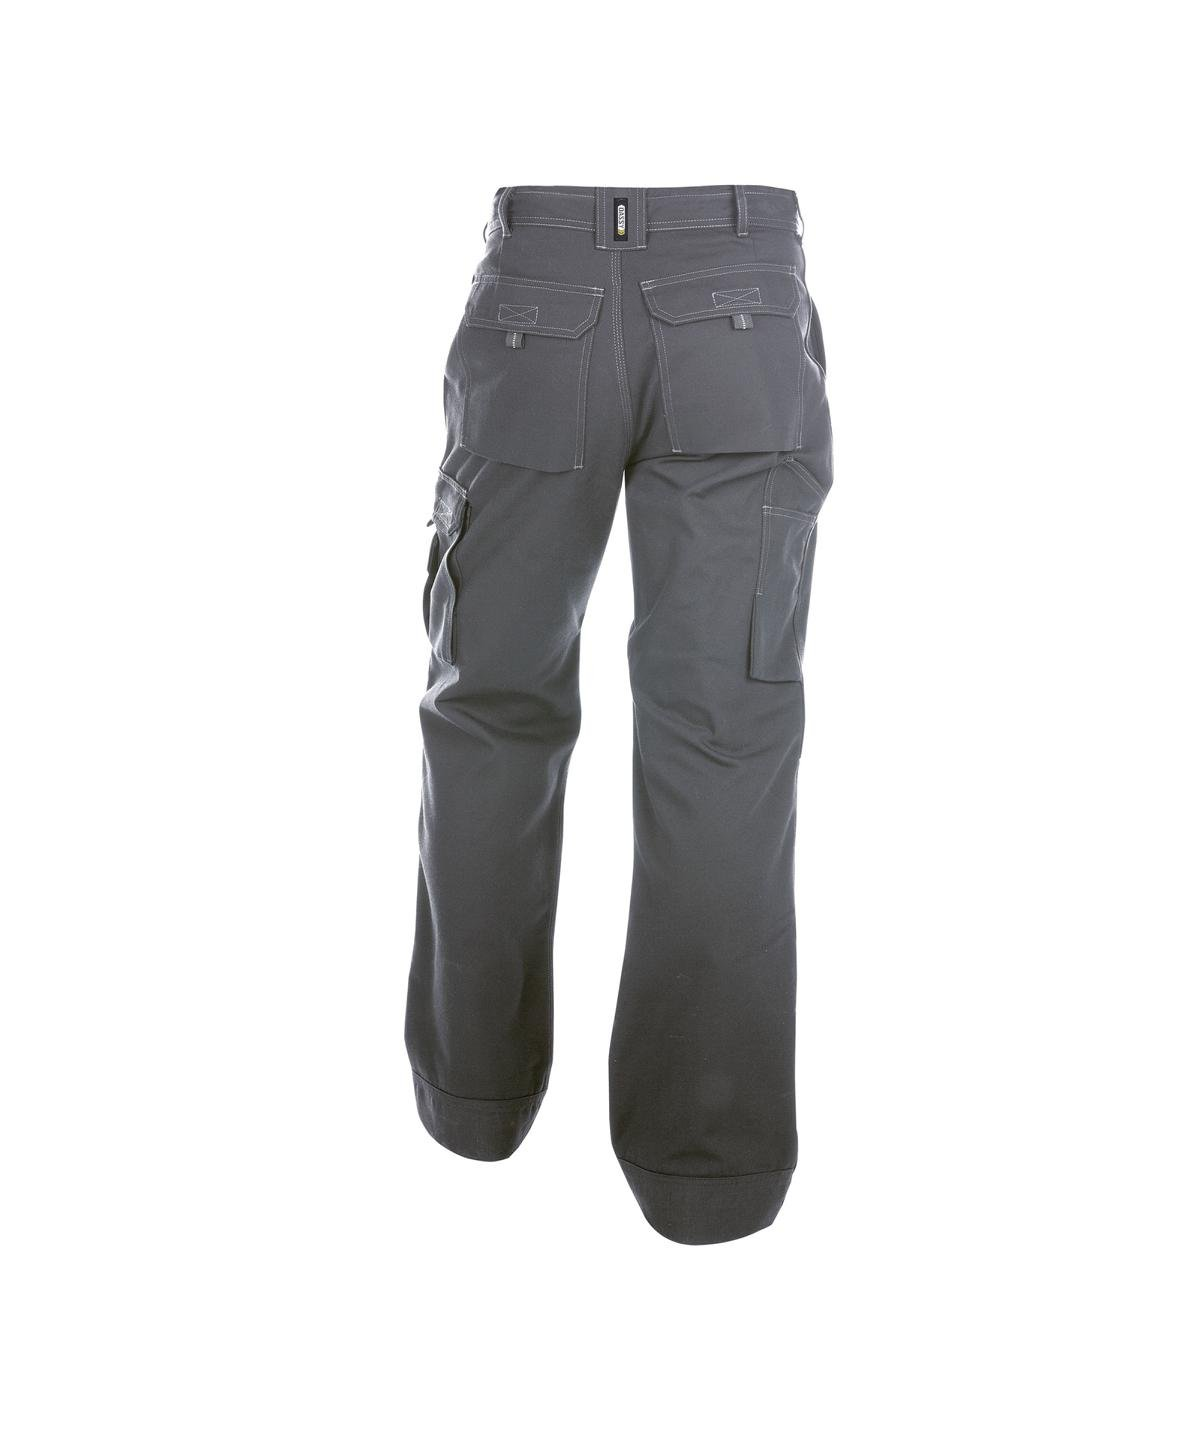 (56)DASSY TROUSER JACKSON COPES60 (340 gr) GREY